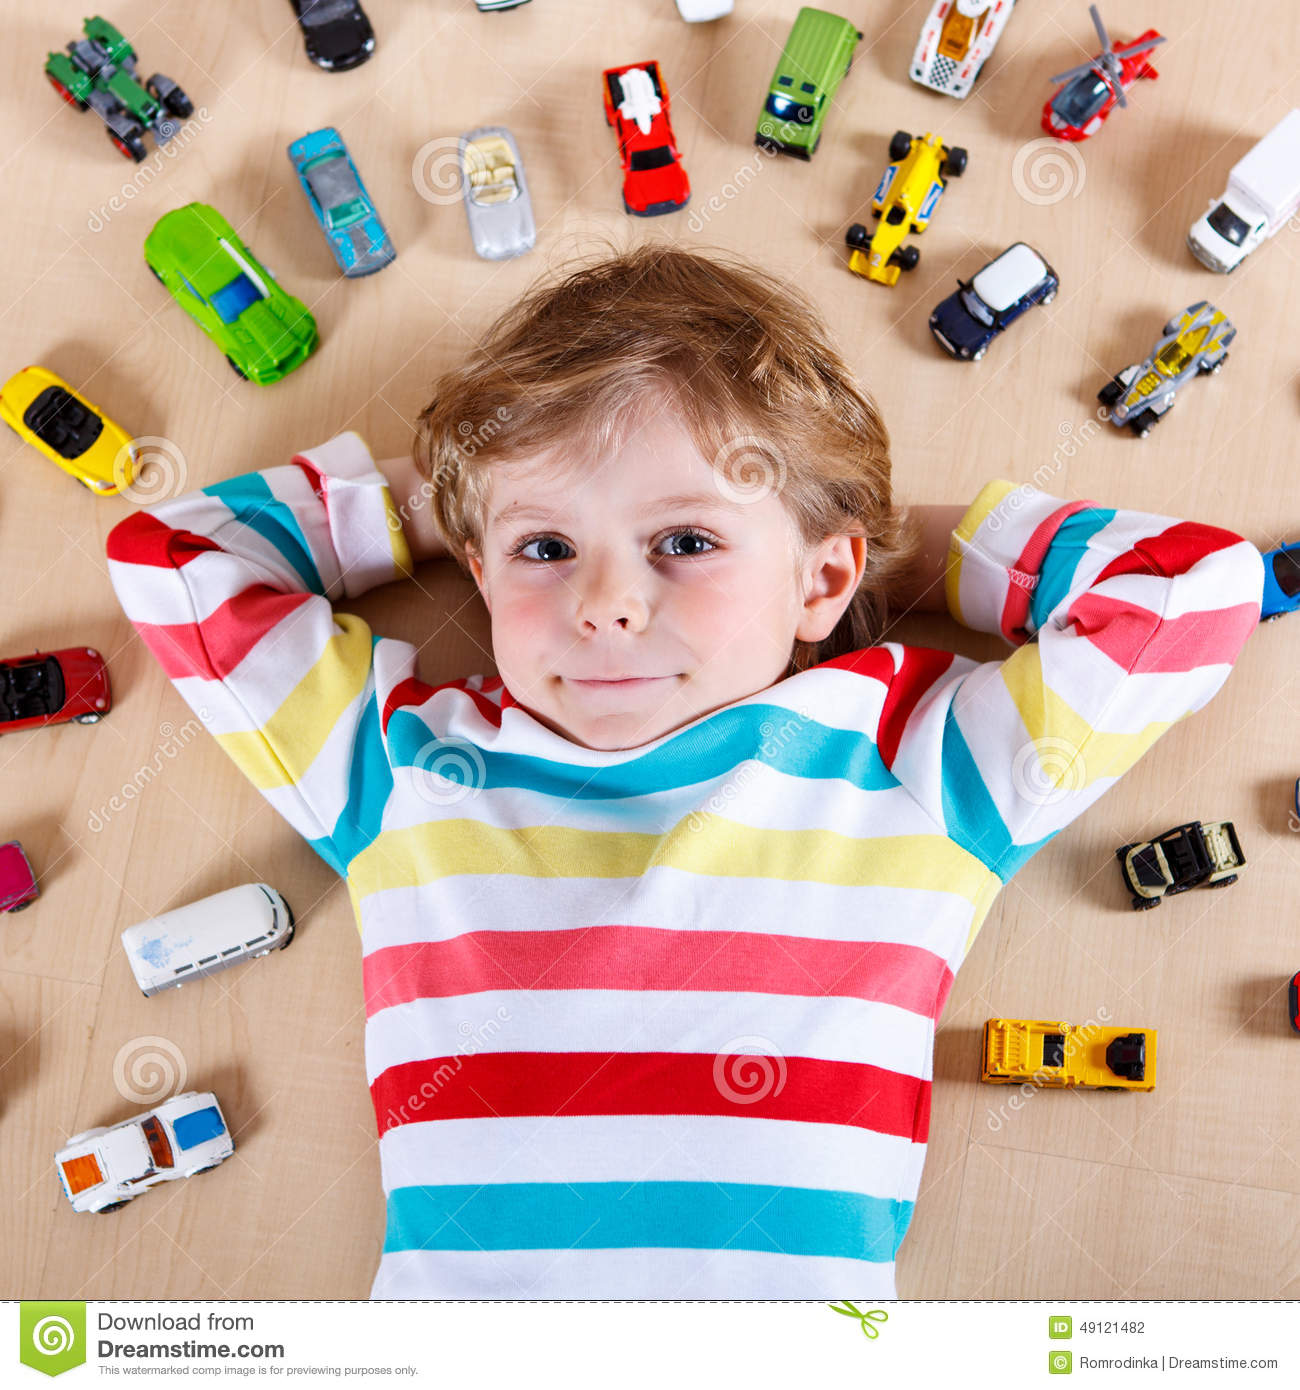 Unique Fun For Little Boys Toys : Little blond child playing with lots of toy cars indoor